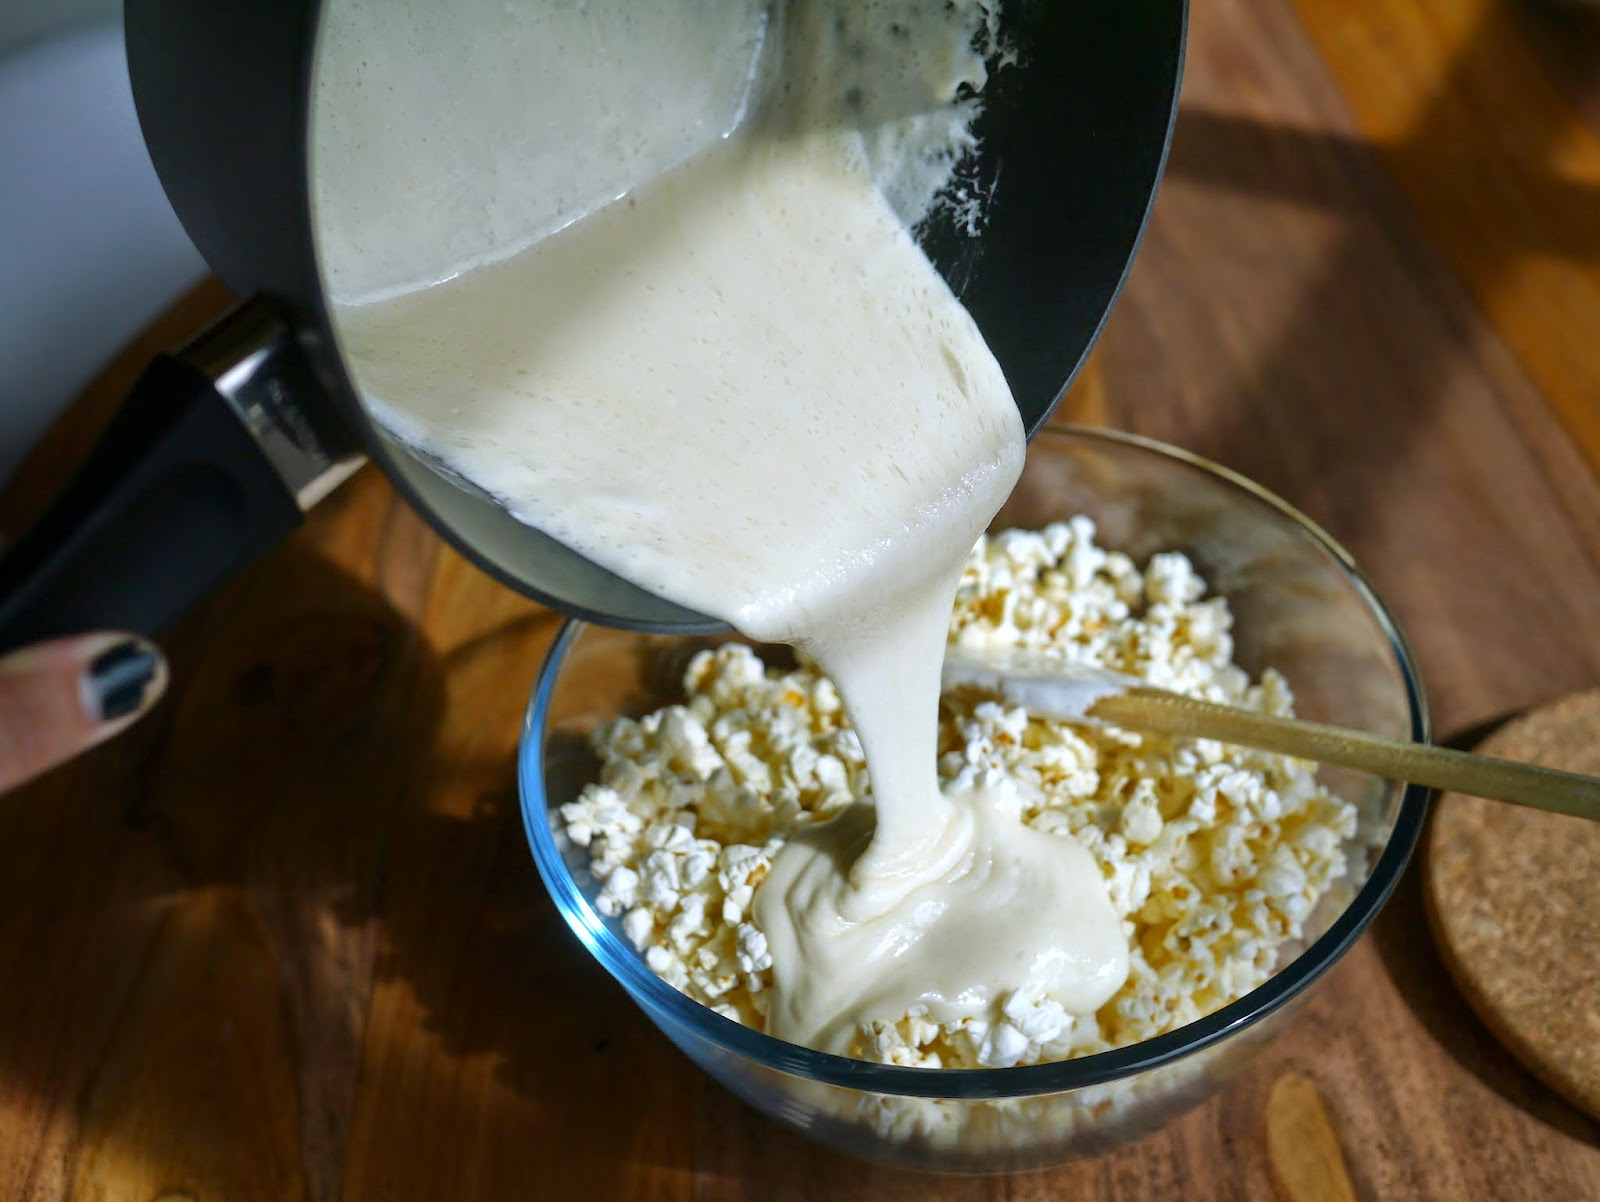 remove the marshmallow mix from the heat and pour over the popcorn